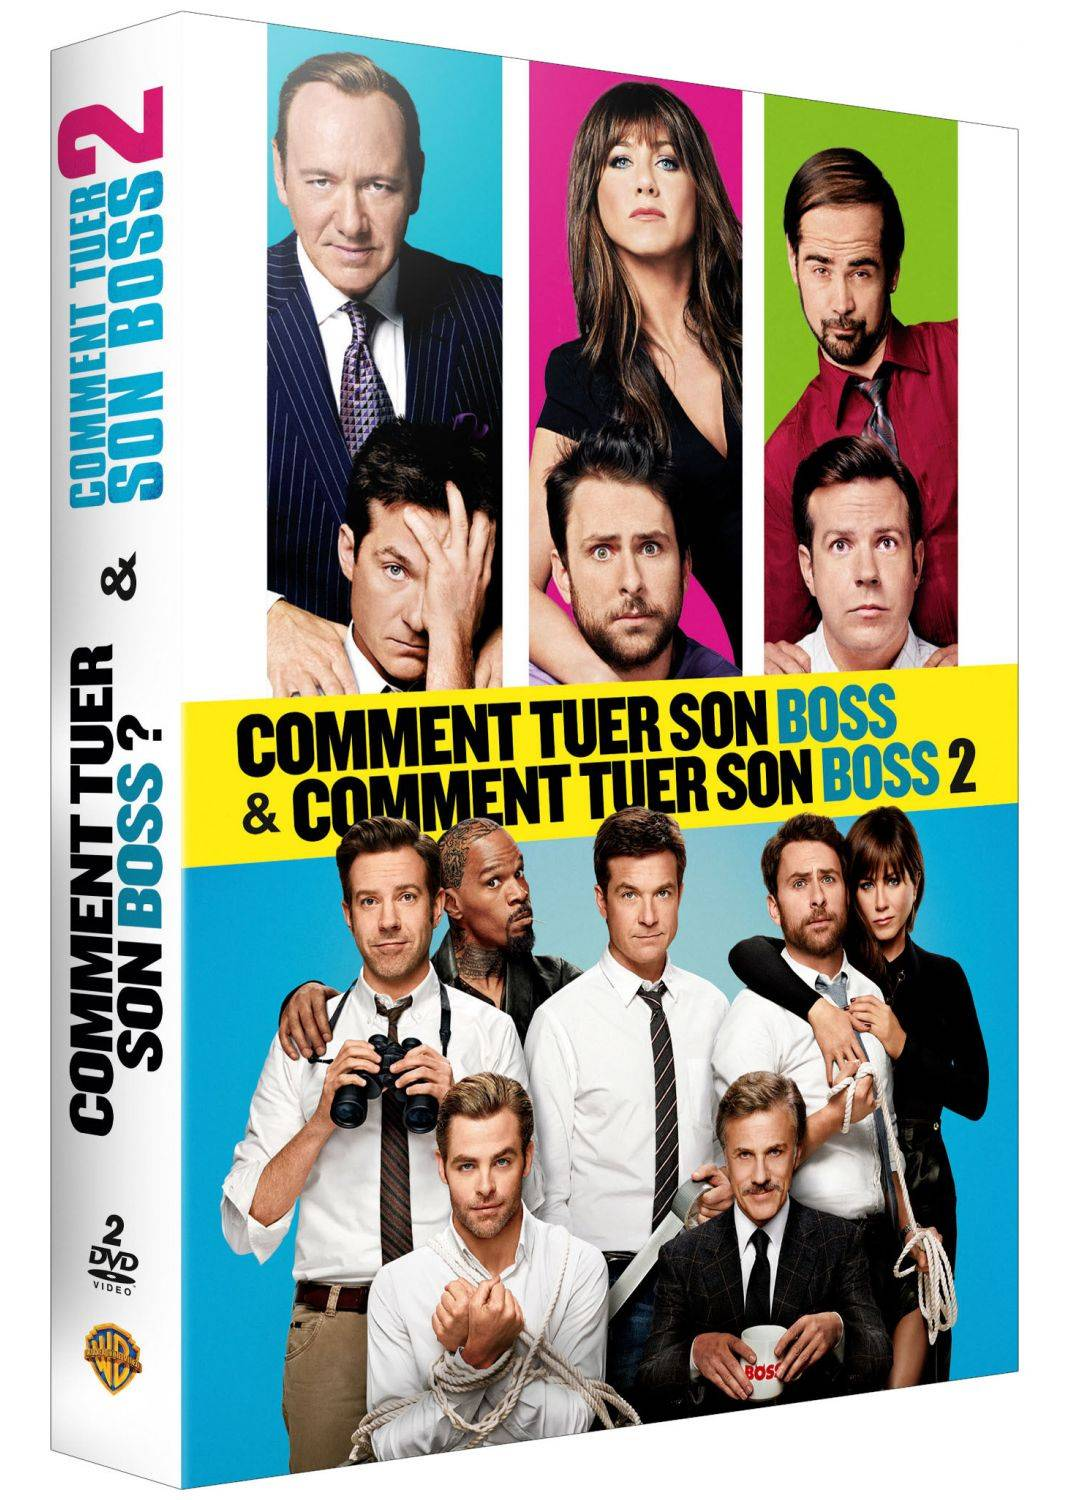 Comment tuer son boss 1 & 2